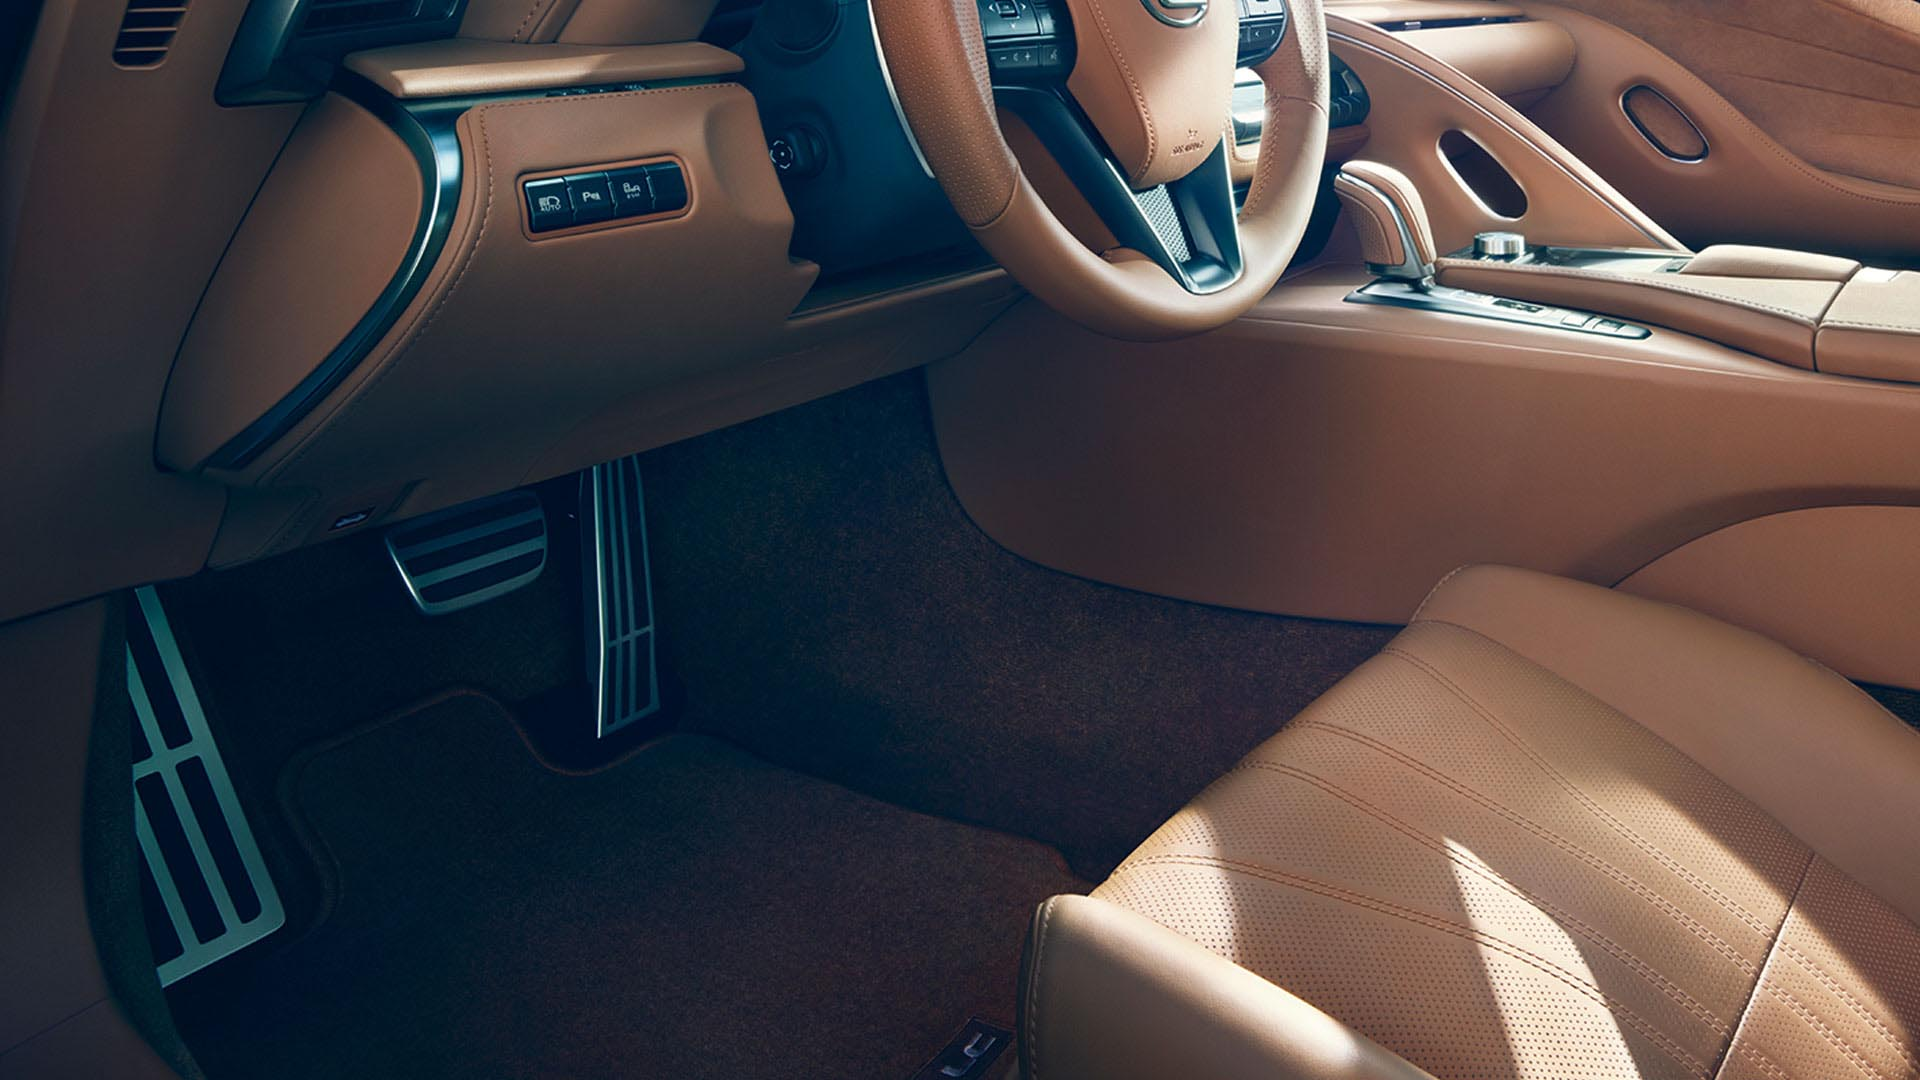 2017 lexus lc 500 features machined pedals